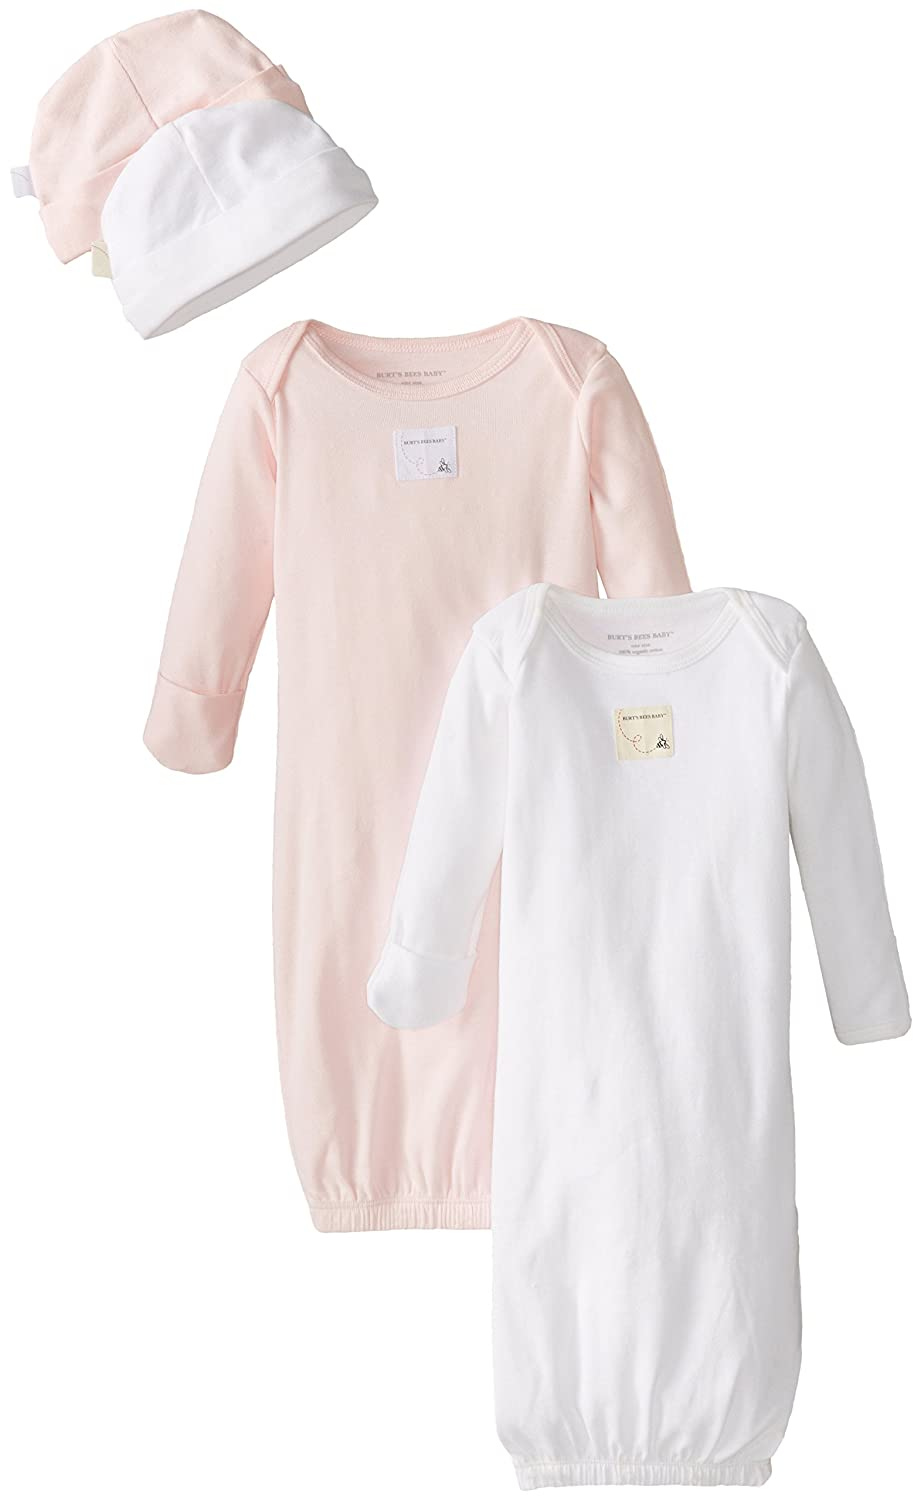 Burt's Bees Baby Set of 2 Gowns + 2 Caps